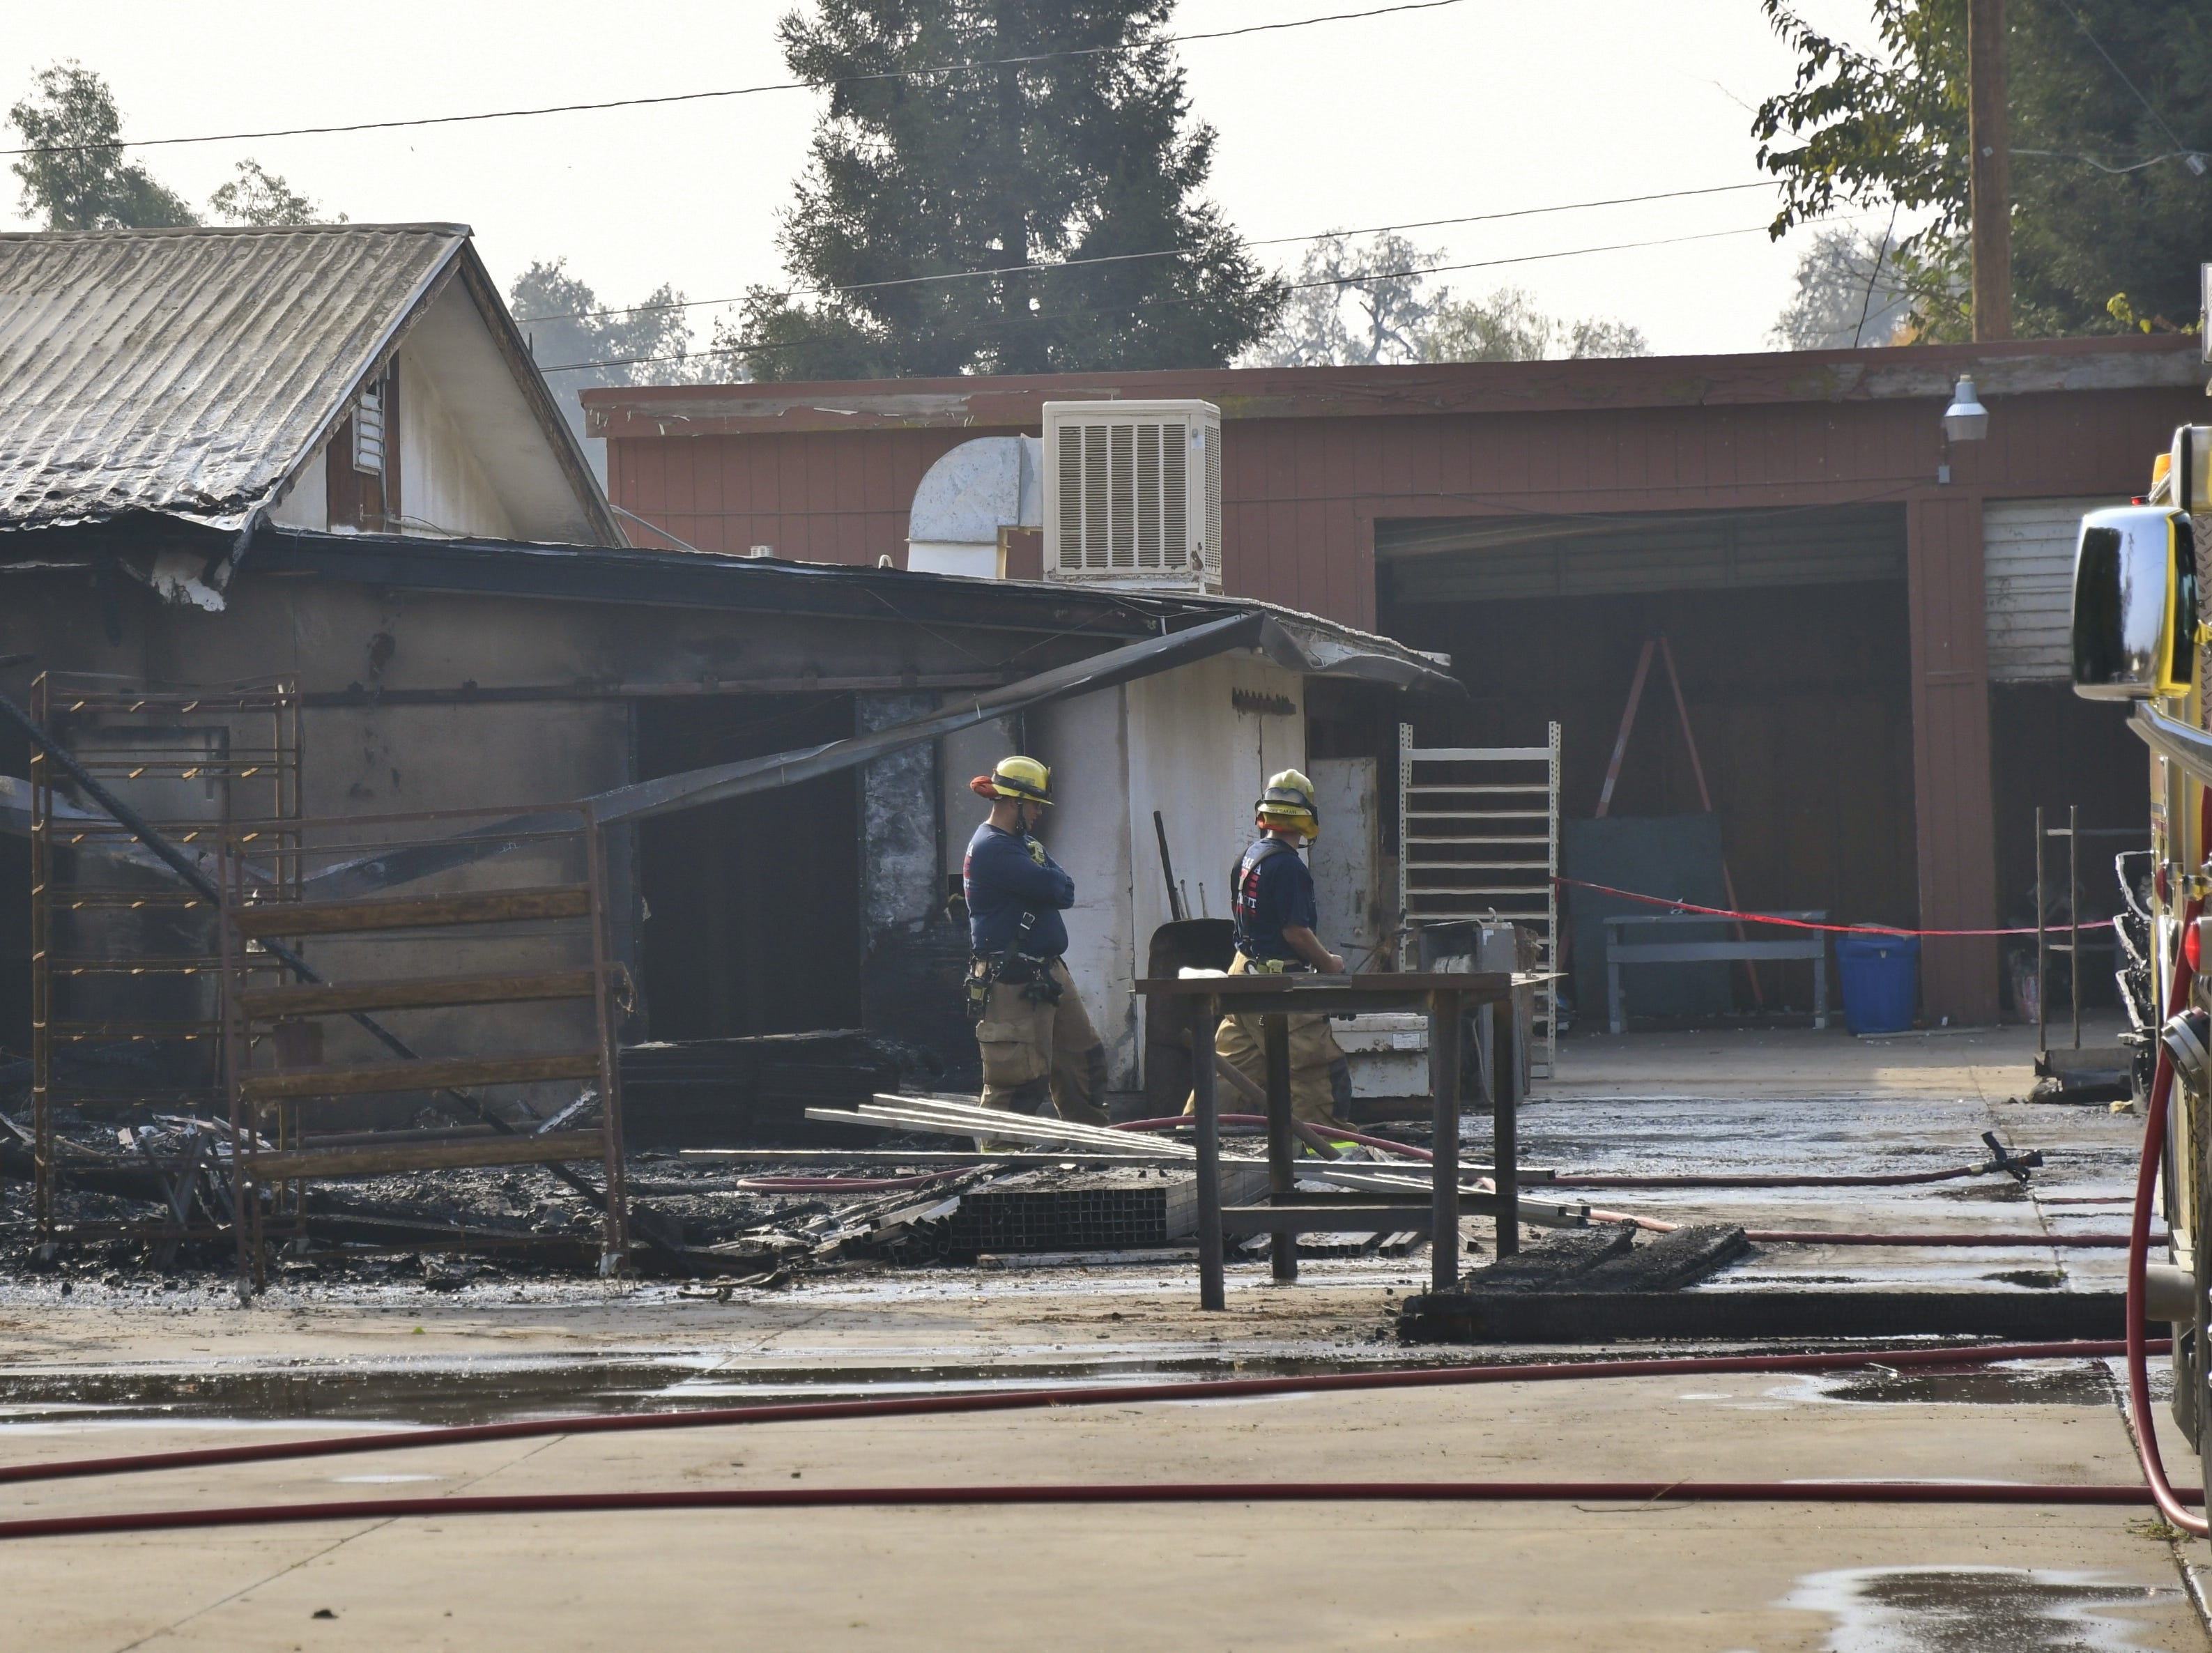 BREAKING: Three-alarm fire destroys another Valley cricket farm, this one in Visalia